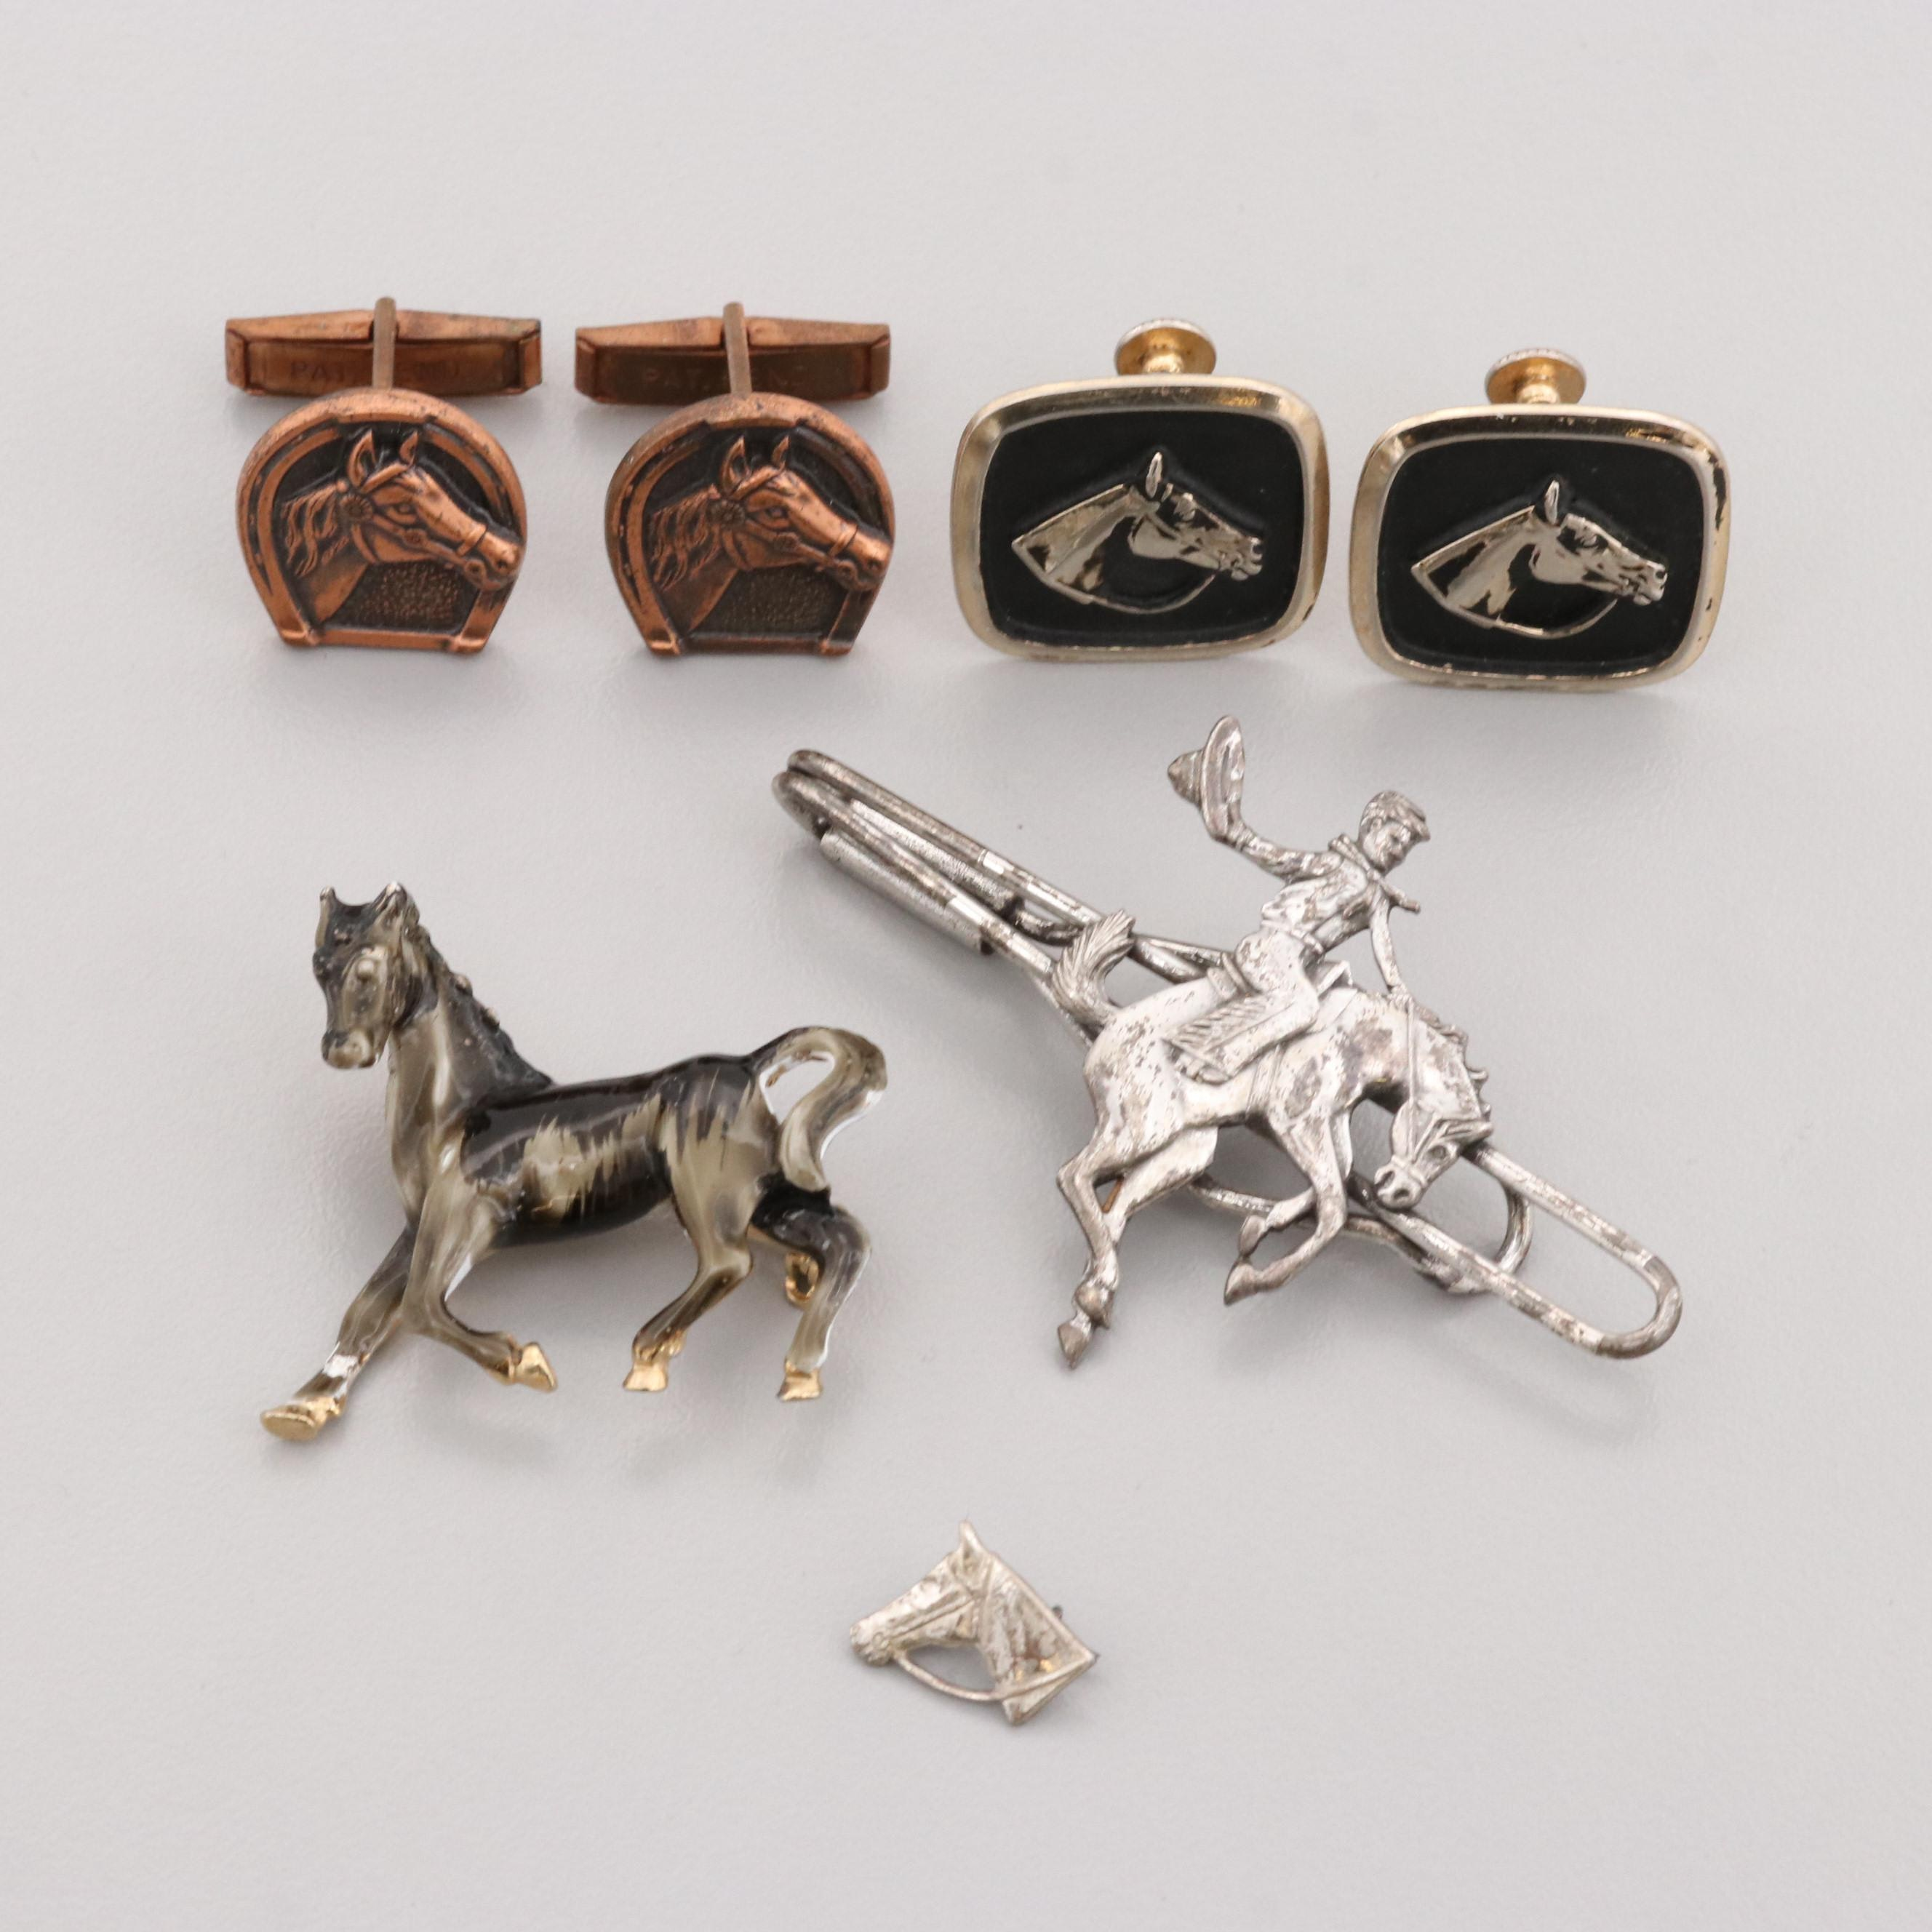 Vintage Silver Tone and Gold Tone Equine Themed Jewelry